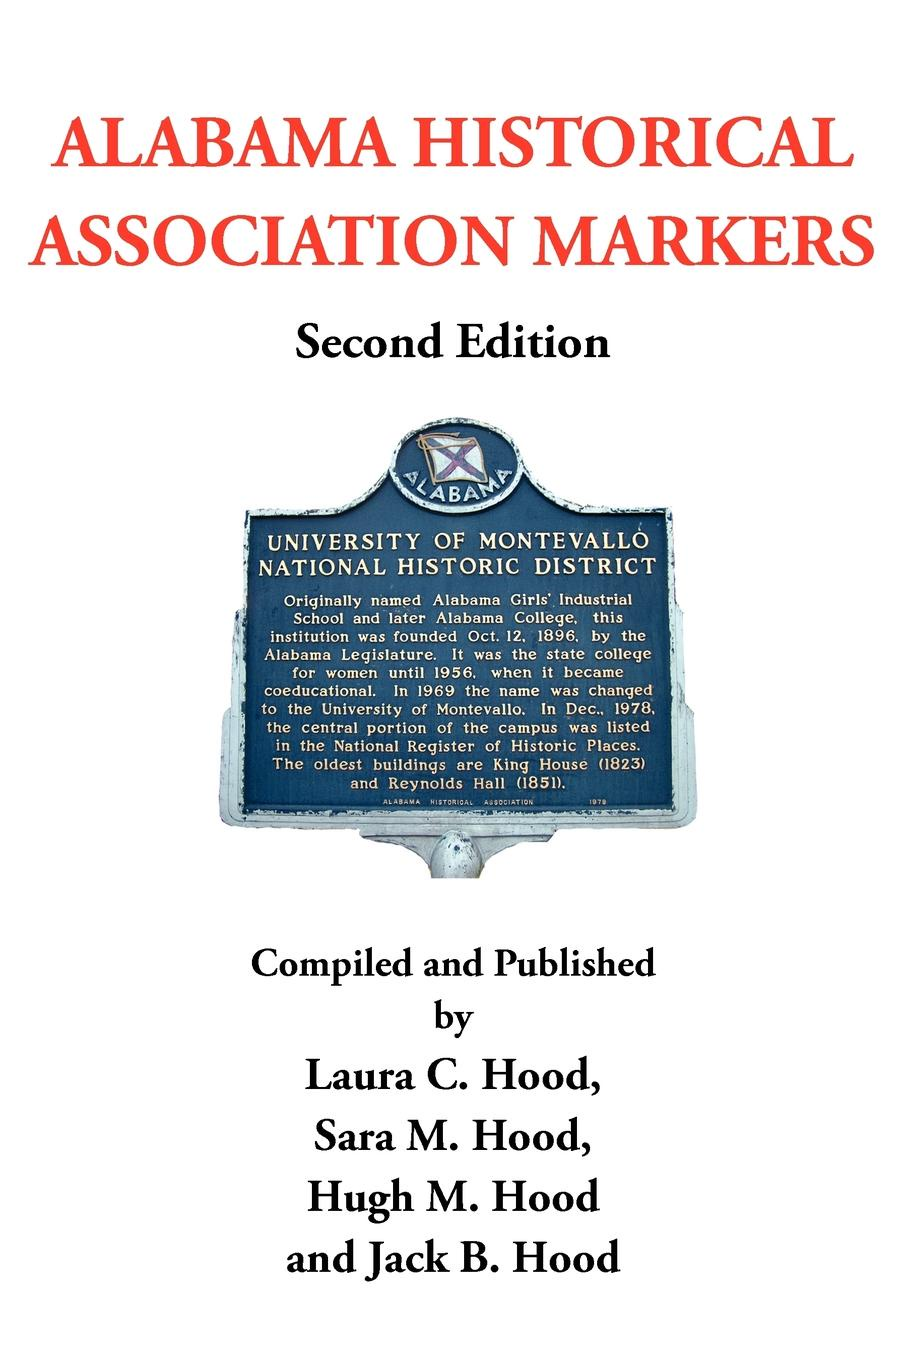 лучшая цена Laura C. Sara M. Hugh M. Jack B. H ALABAMA HISTORICAL ASSOCIATION MARKERS. Second Edition